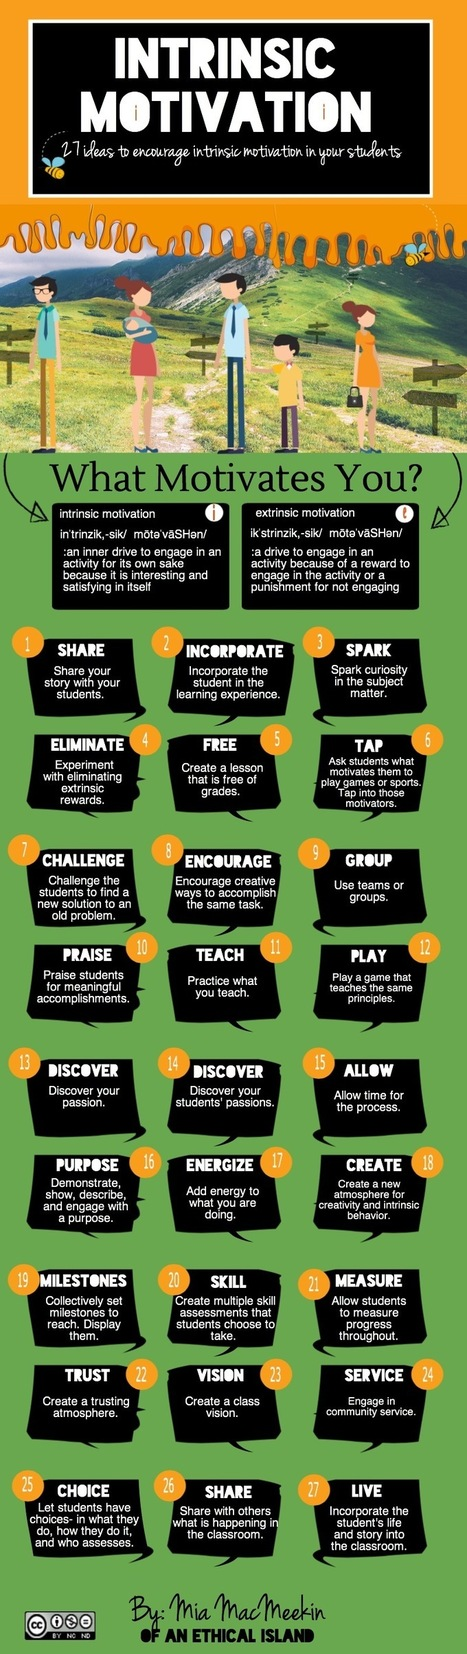 Intrinsic Motivation for the Classroom - Infographic | Transforming Ed | Scoop.it